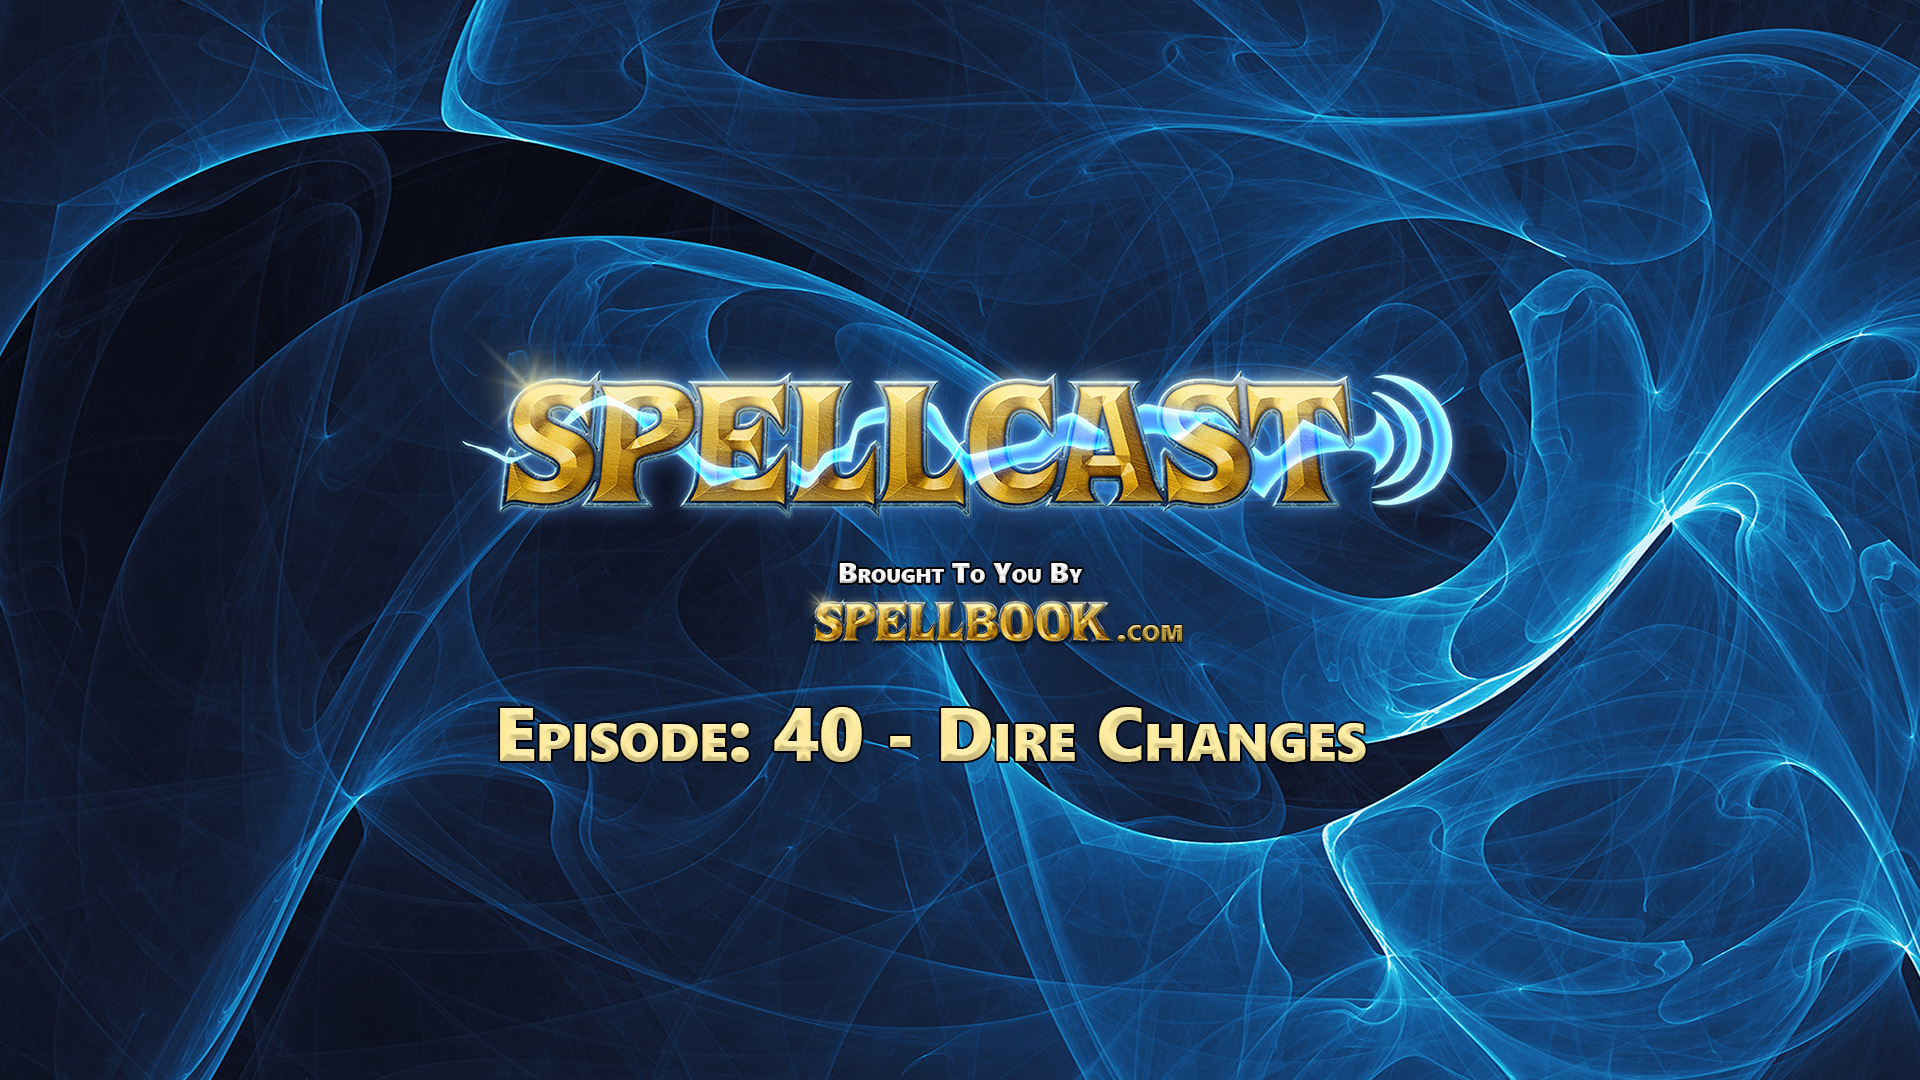 Spellcast Episode: 40 - Dire Changes